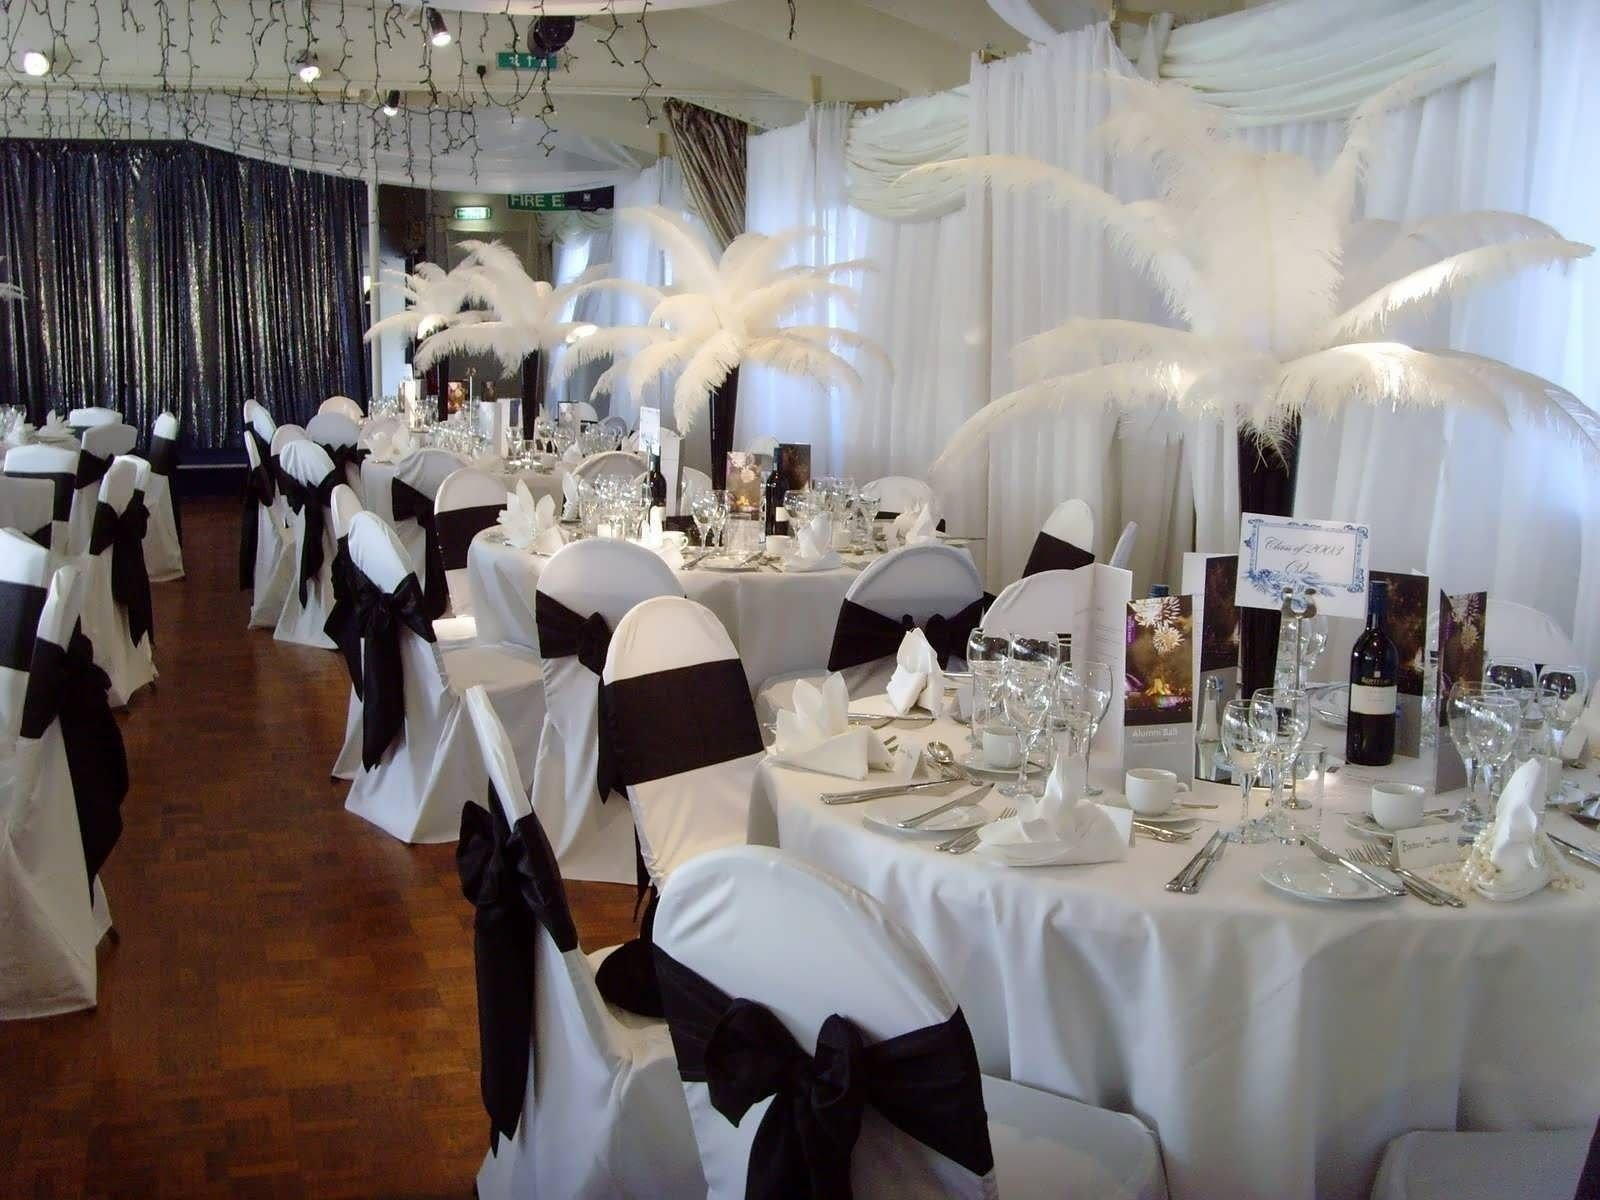 10 nice wedding decoration ideas on a budget 10 nice wedding decoration ideas on a budget wedding decorations ideas pictures included wedding decorations junglespirit Image collections